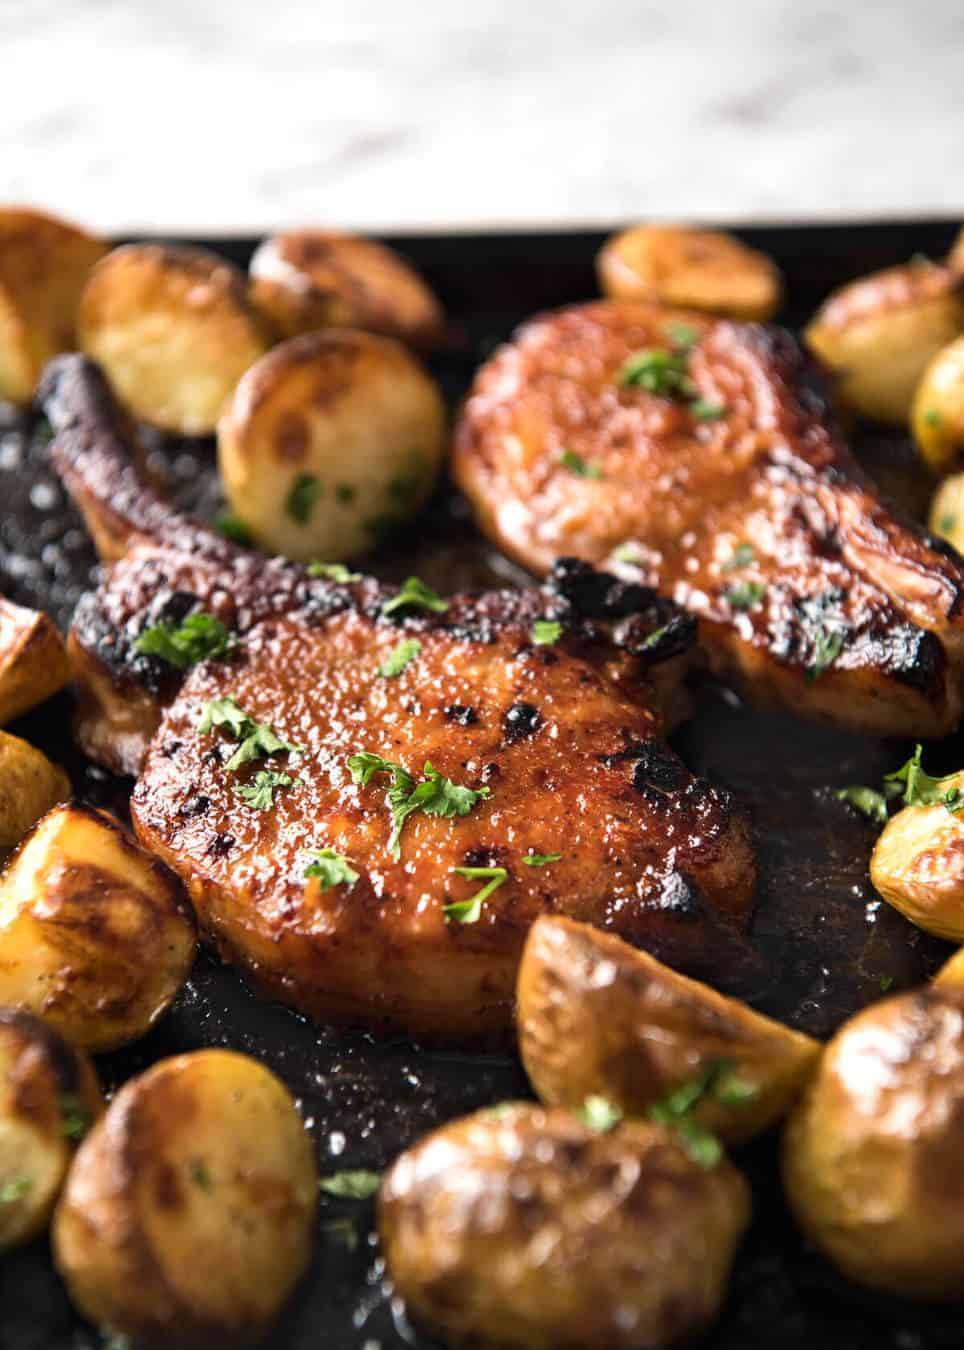 How Long To Bake Pork Chops  Oven Baked Pork Chops with Potatoes